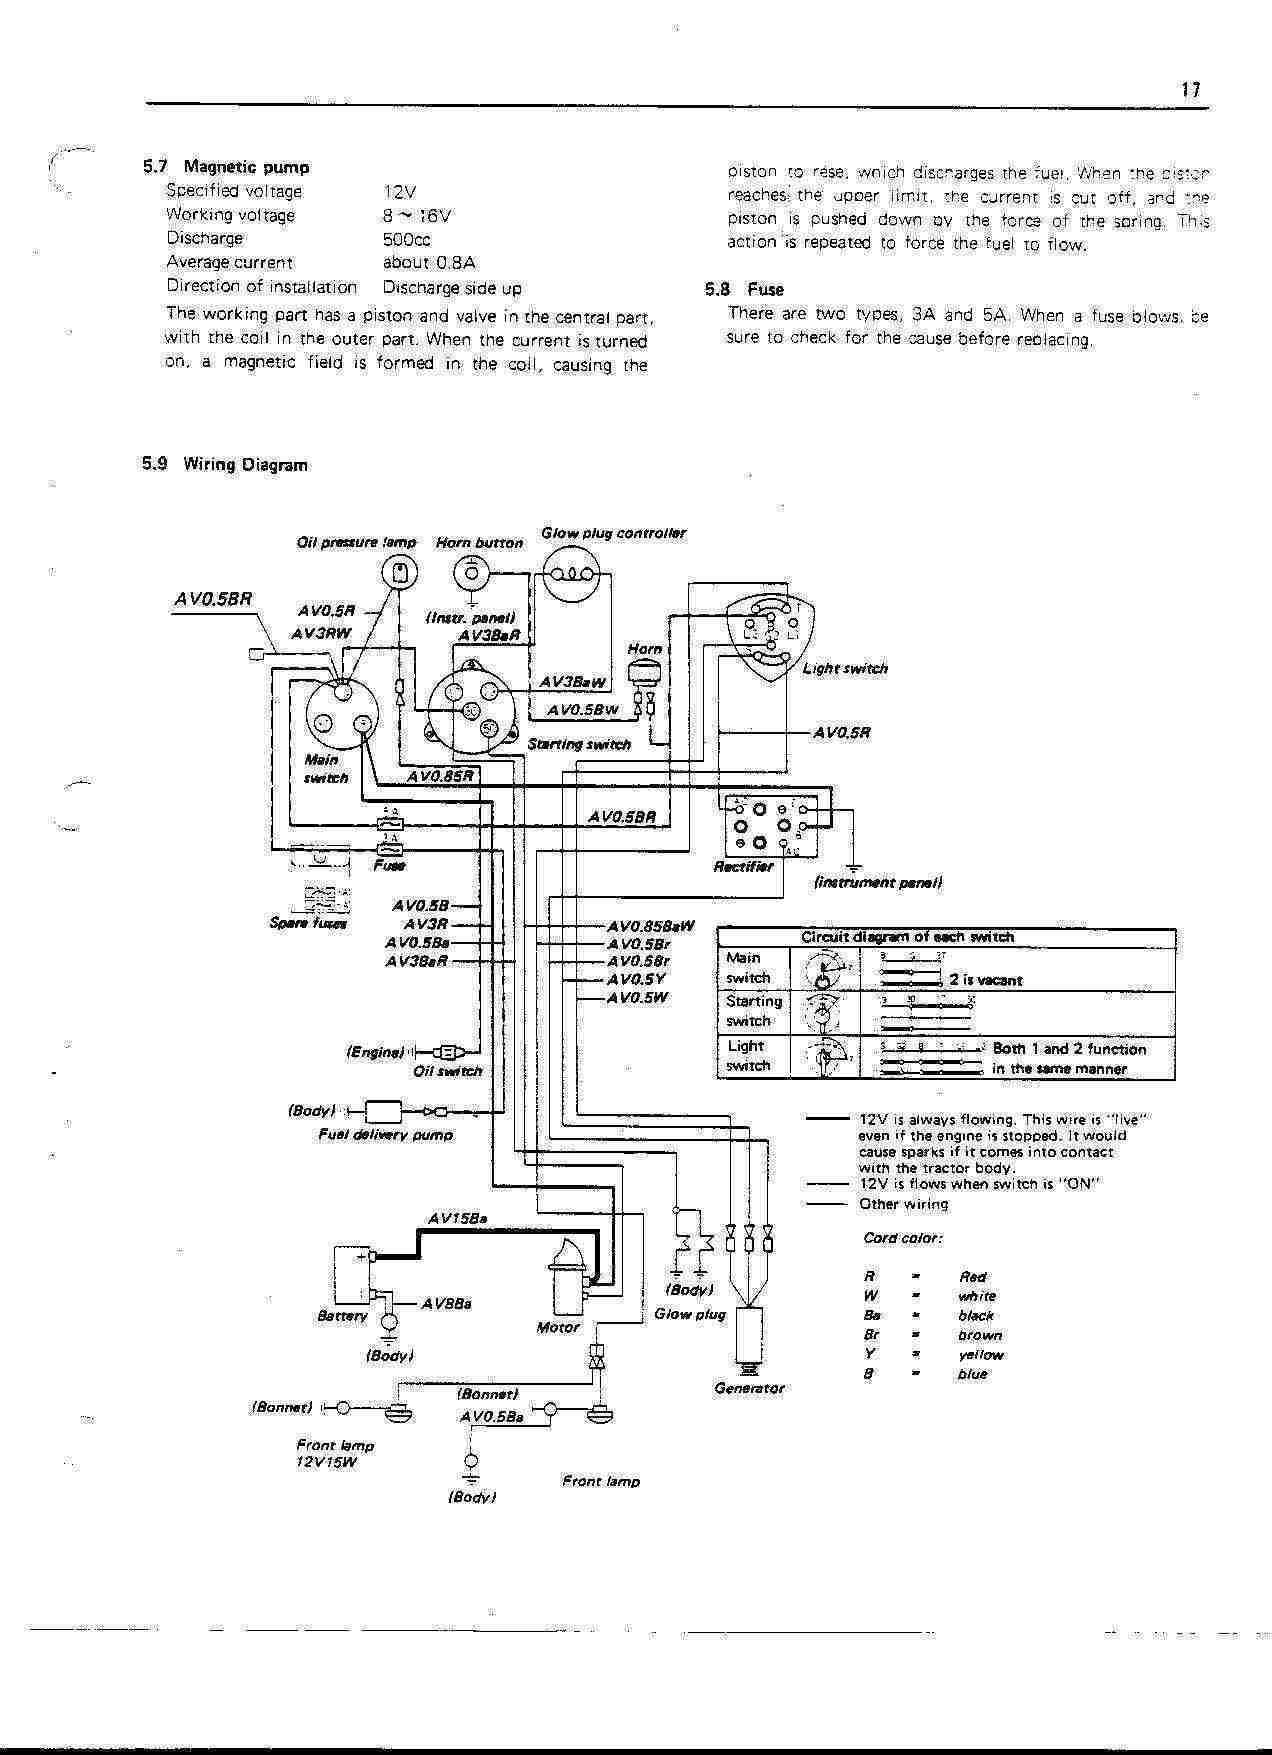 Xs Wiring Diagram Chopper on xs650 clutch lever diagram, xs650 chopper forum, adult learning model diagram, wiring harness diagram, xs650 engine diagram, 81 xs650 electrical diagram, boyer ignition wiring diagram, xs650 chopper brakes, xs650 simplified wiring, 1977 yamaha xs650 electrical diagram, xs650 bobber wiring diagram, xs650 wiring diagram without points, motorcycle charging system diagram, xs650 ignition wiring, xs650 wiring schematic engine, xs650 chopper exhaust, 1980 xs650 cdi wiring diagram, xs650 chopper parts, simple harley wiring diagram,